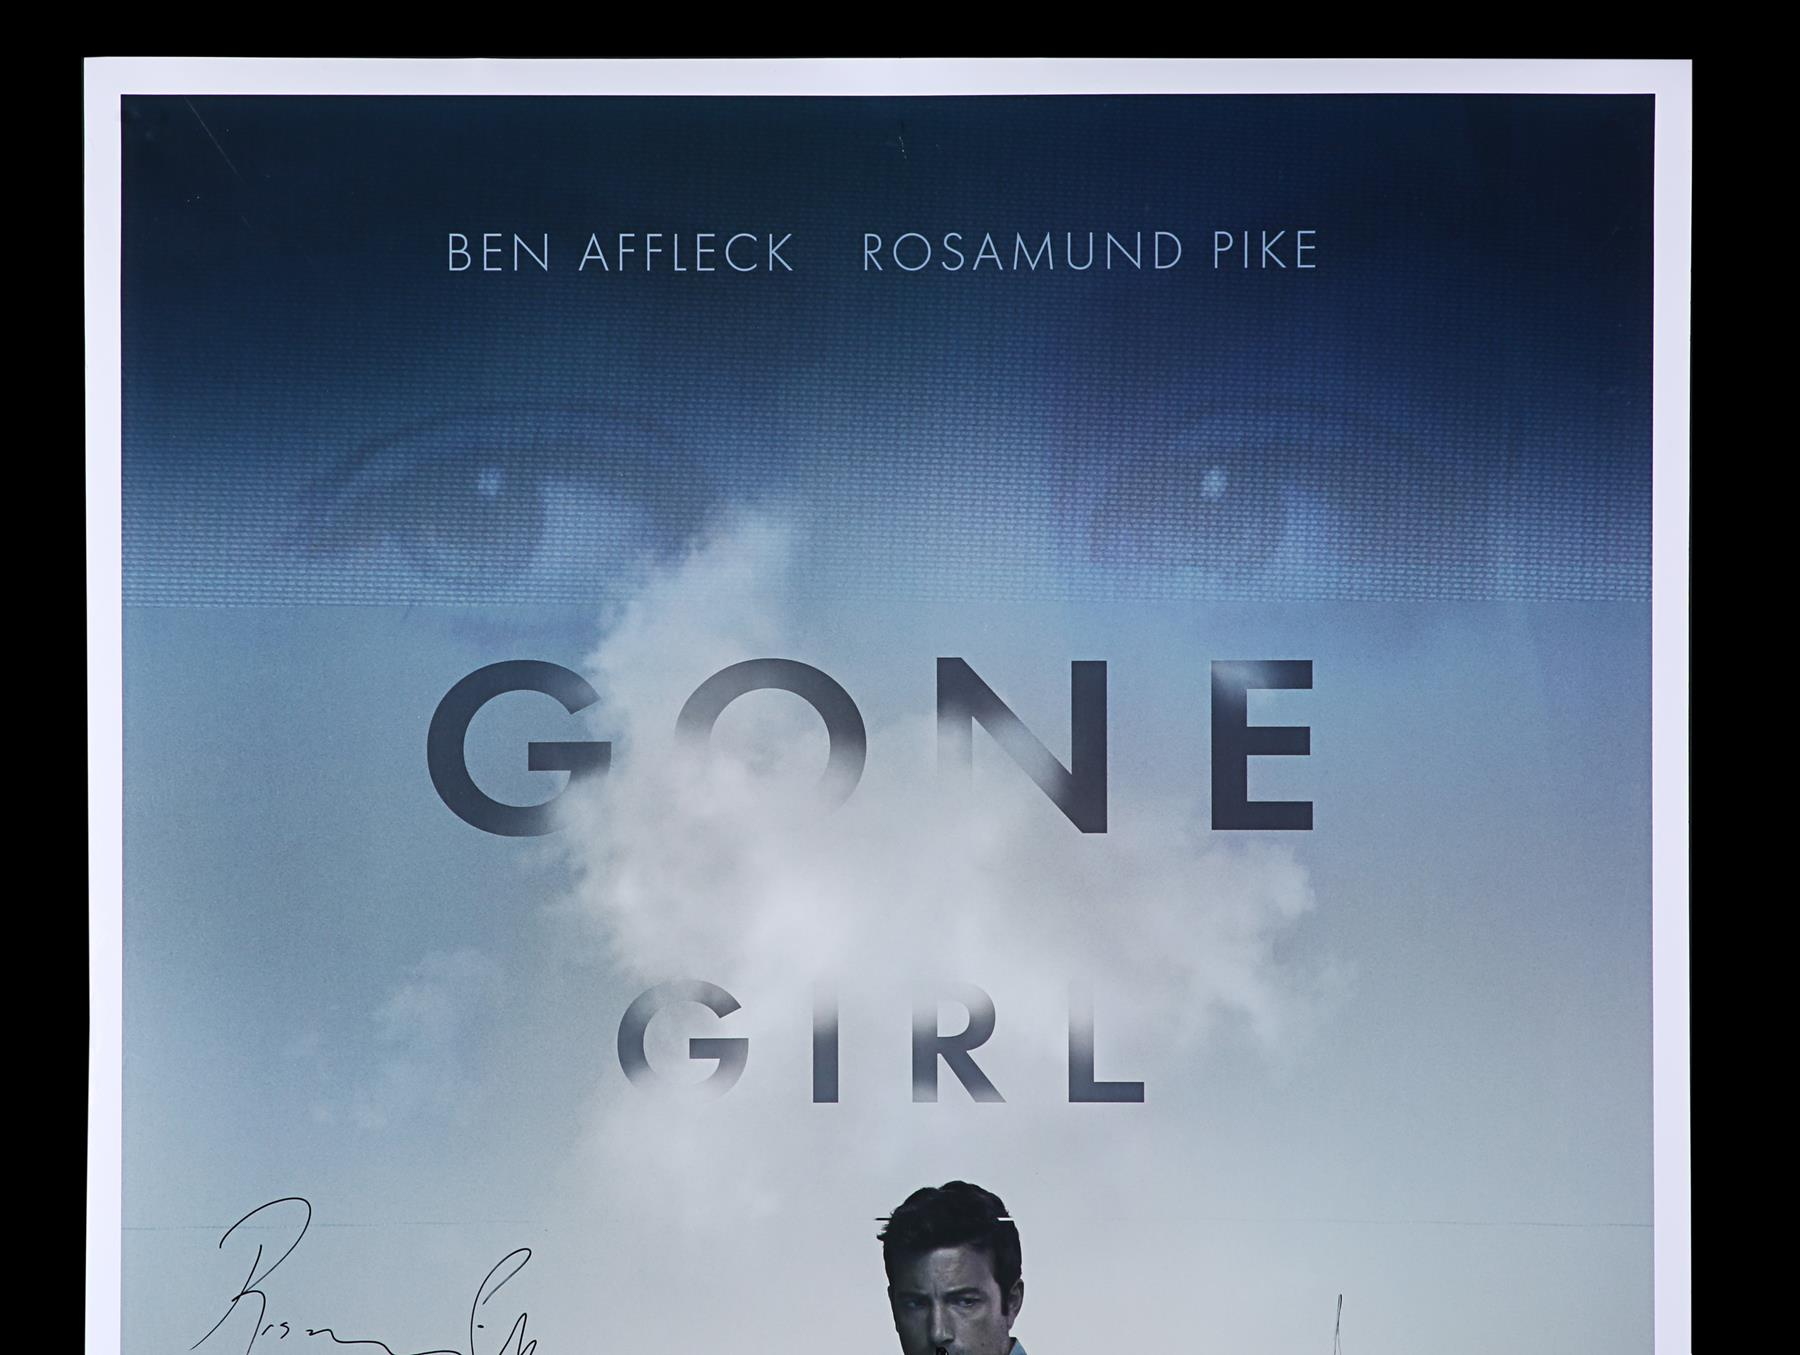 GONE GIRL (2014) - Poster Autographed by David Fincher and Rosamund Pike - Image 2 of 7